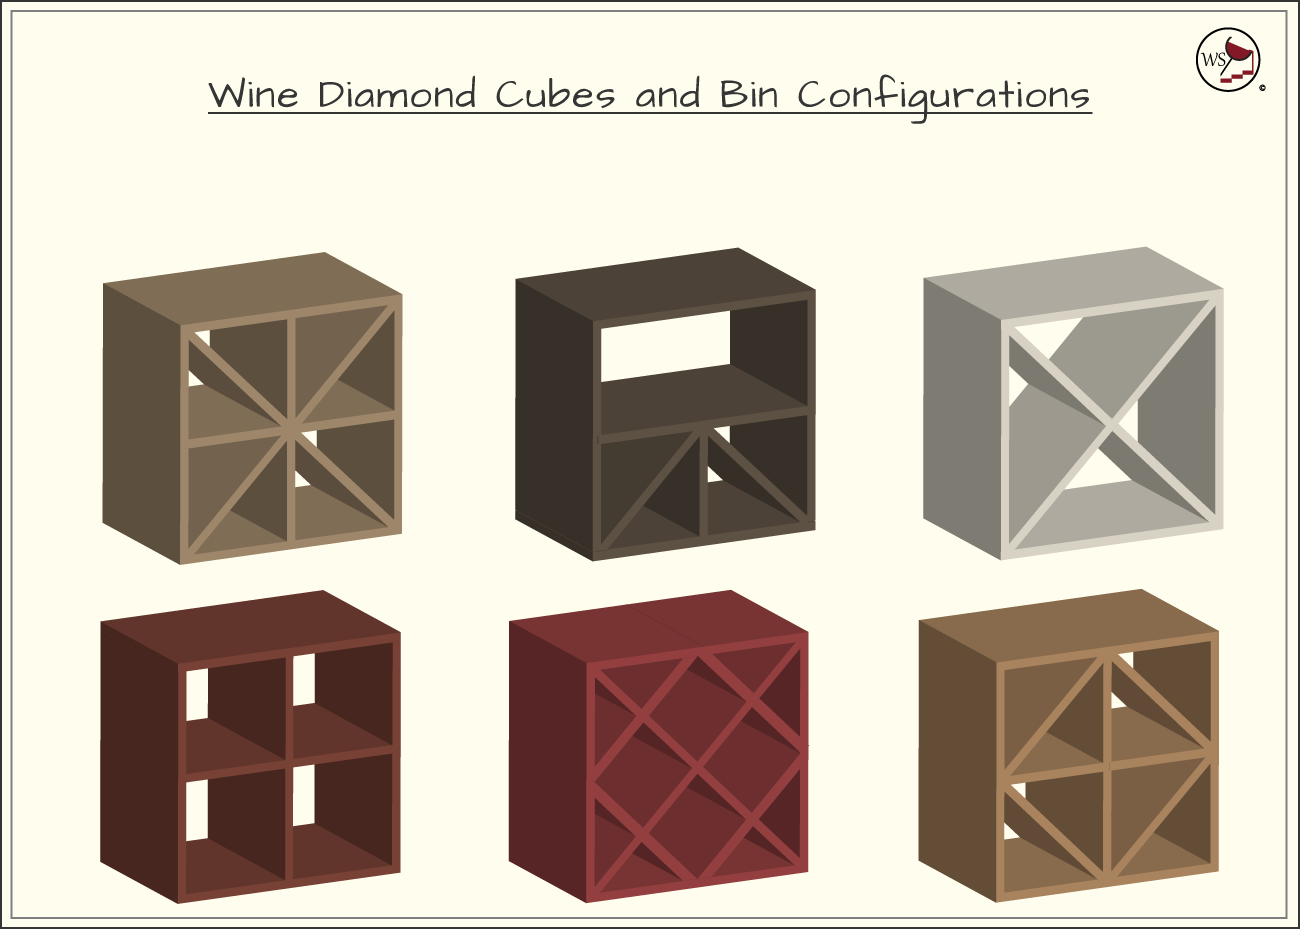 Infographic showing six different configurations of wine diamonds and cubes to store wine in.